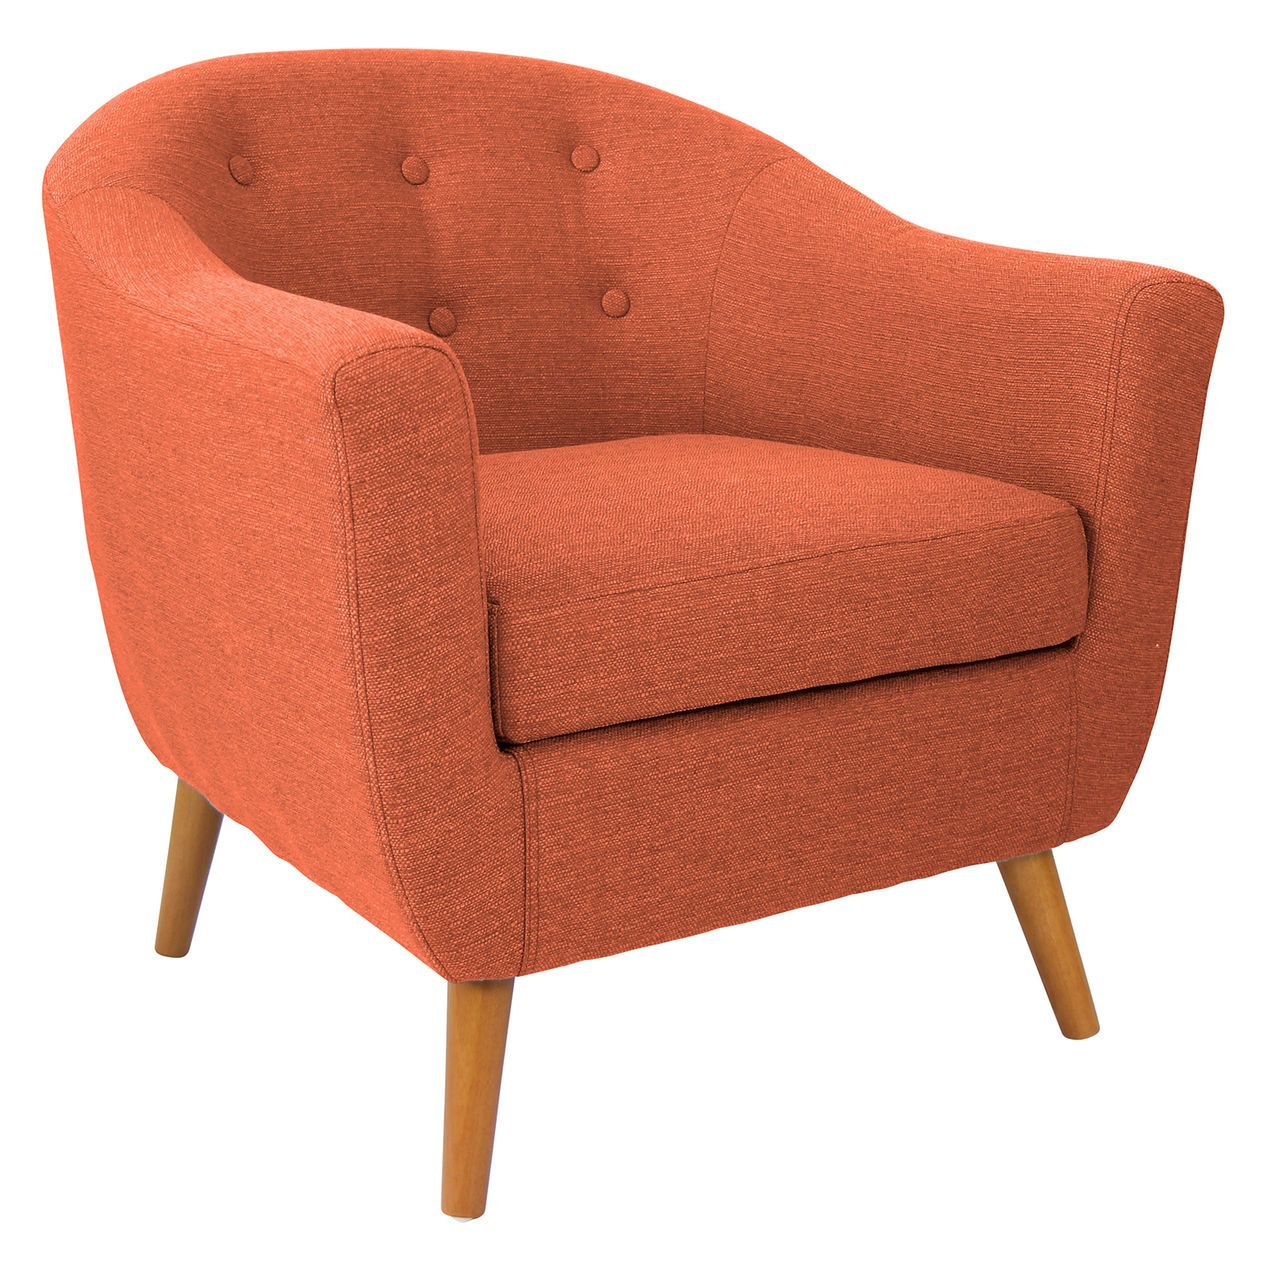 Rockwell Accent Chair Orange Upholstered Accent Chairs Orange